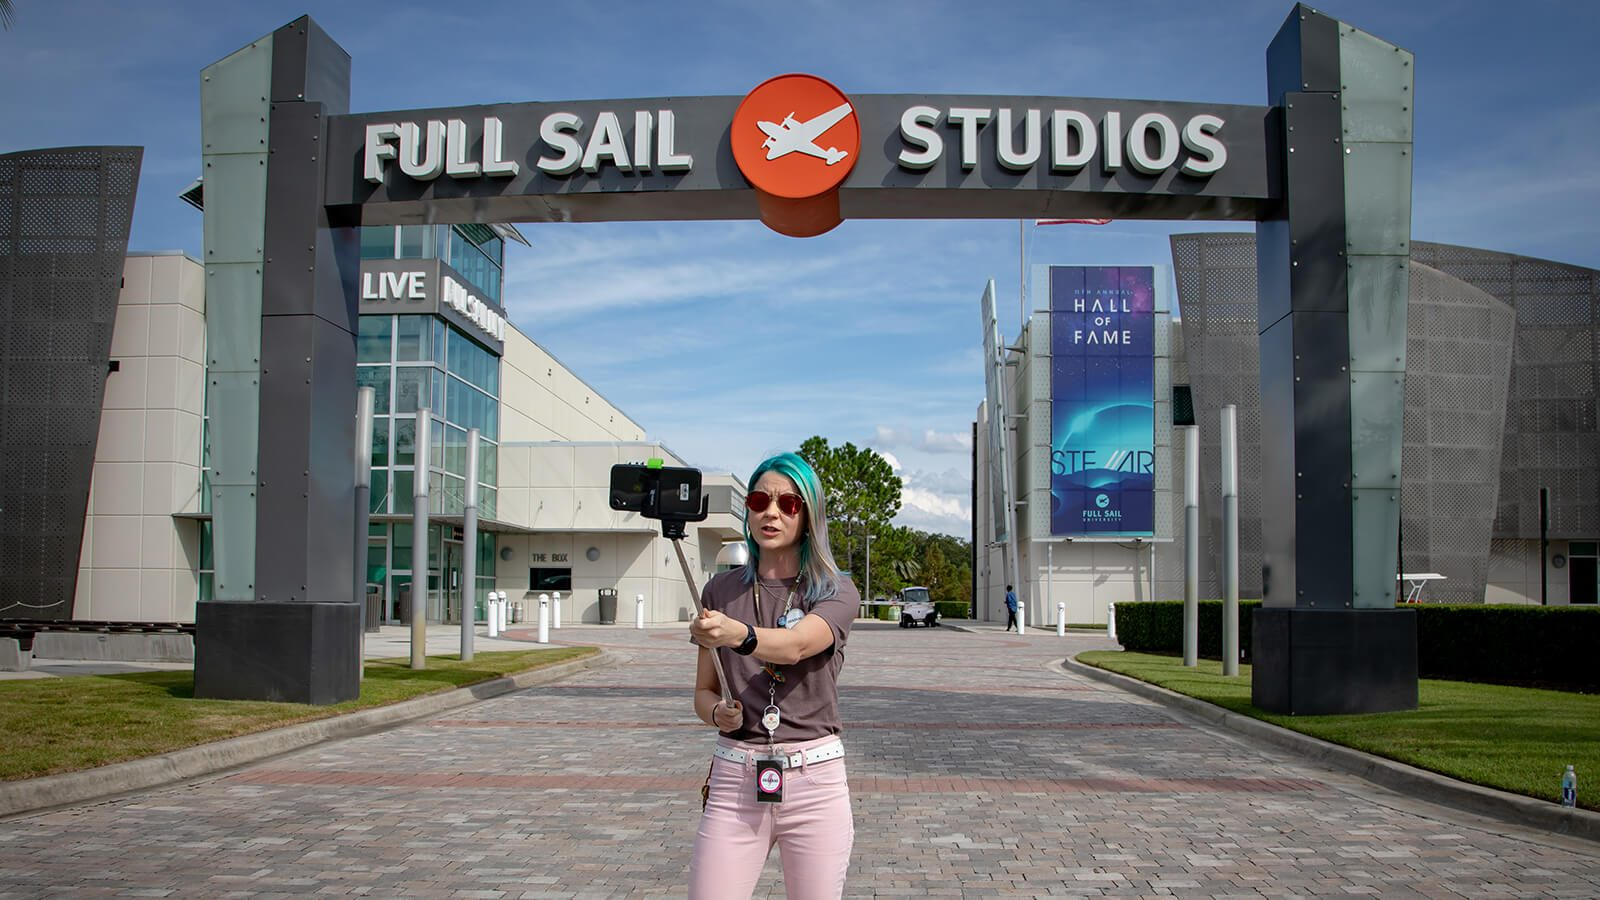 A Full Sail Tour Guide take prospective students on a virtual tour of the campus.